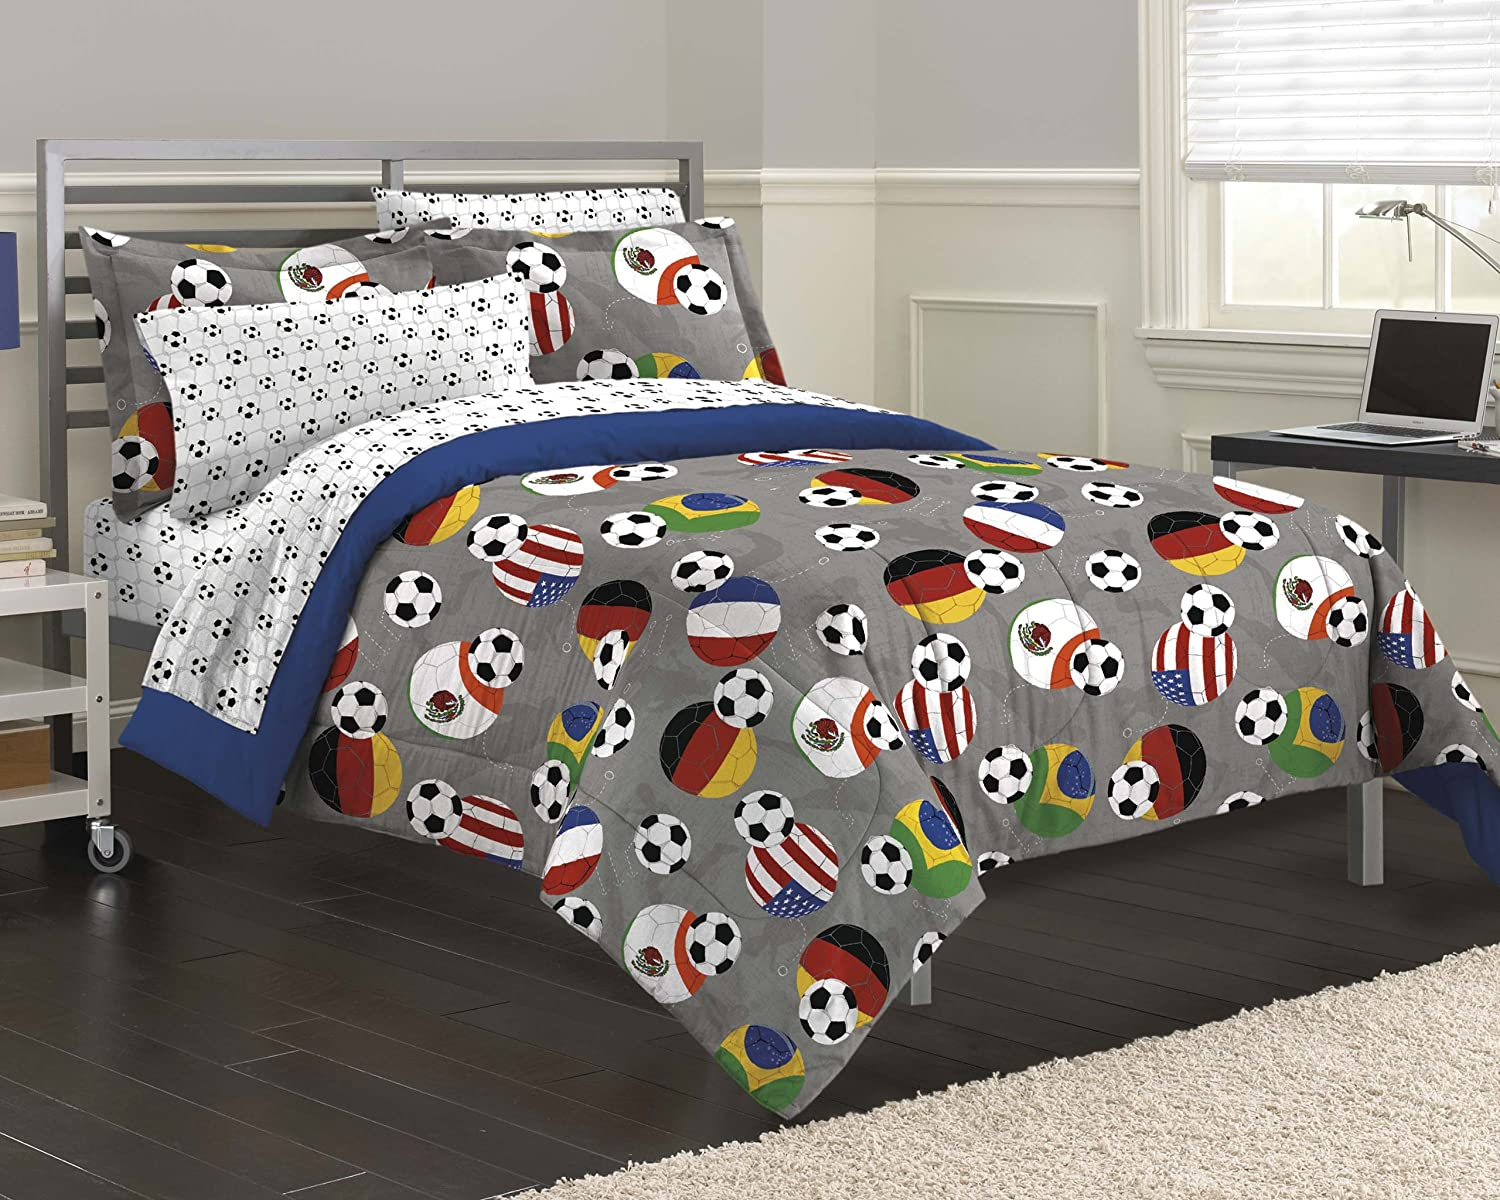 My Room Soccer Fever Teen Bedding Comforter Set, Gray, Full